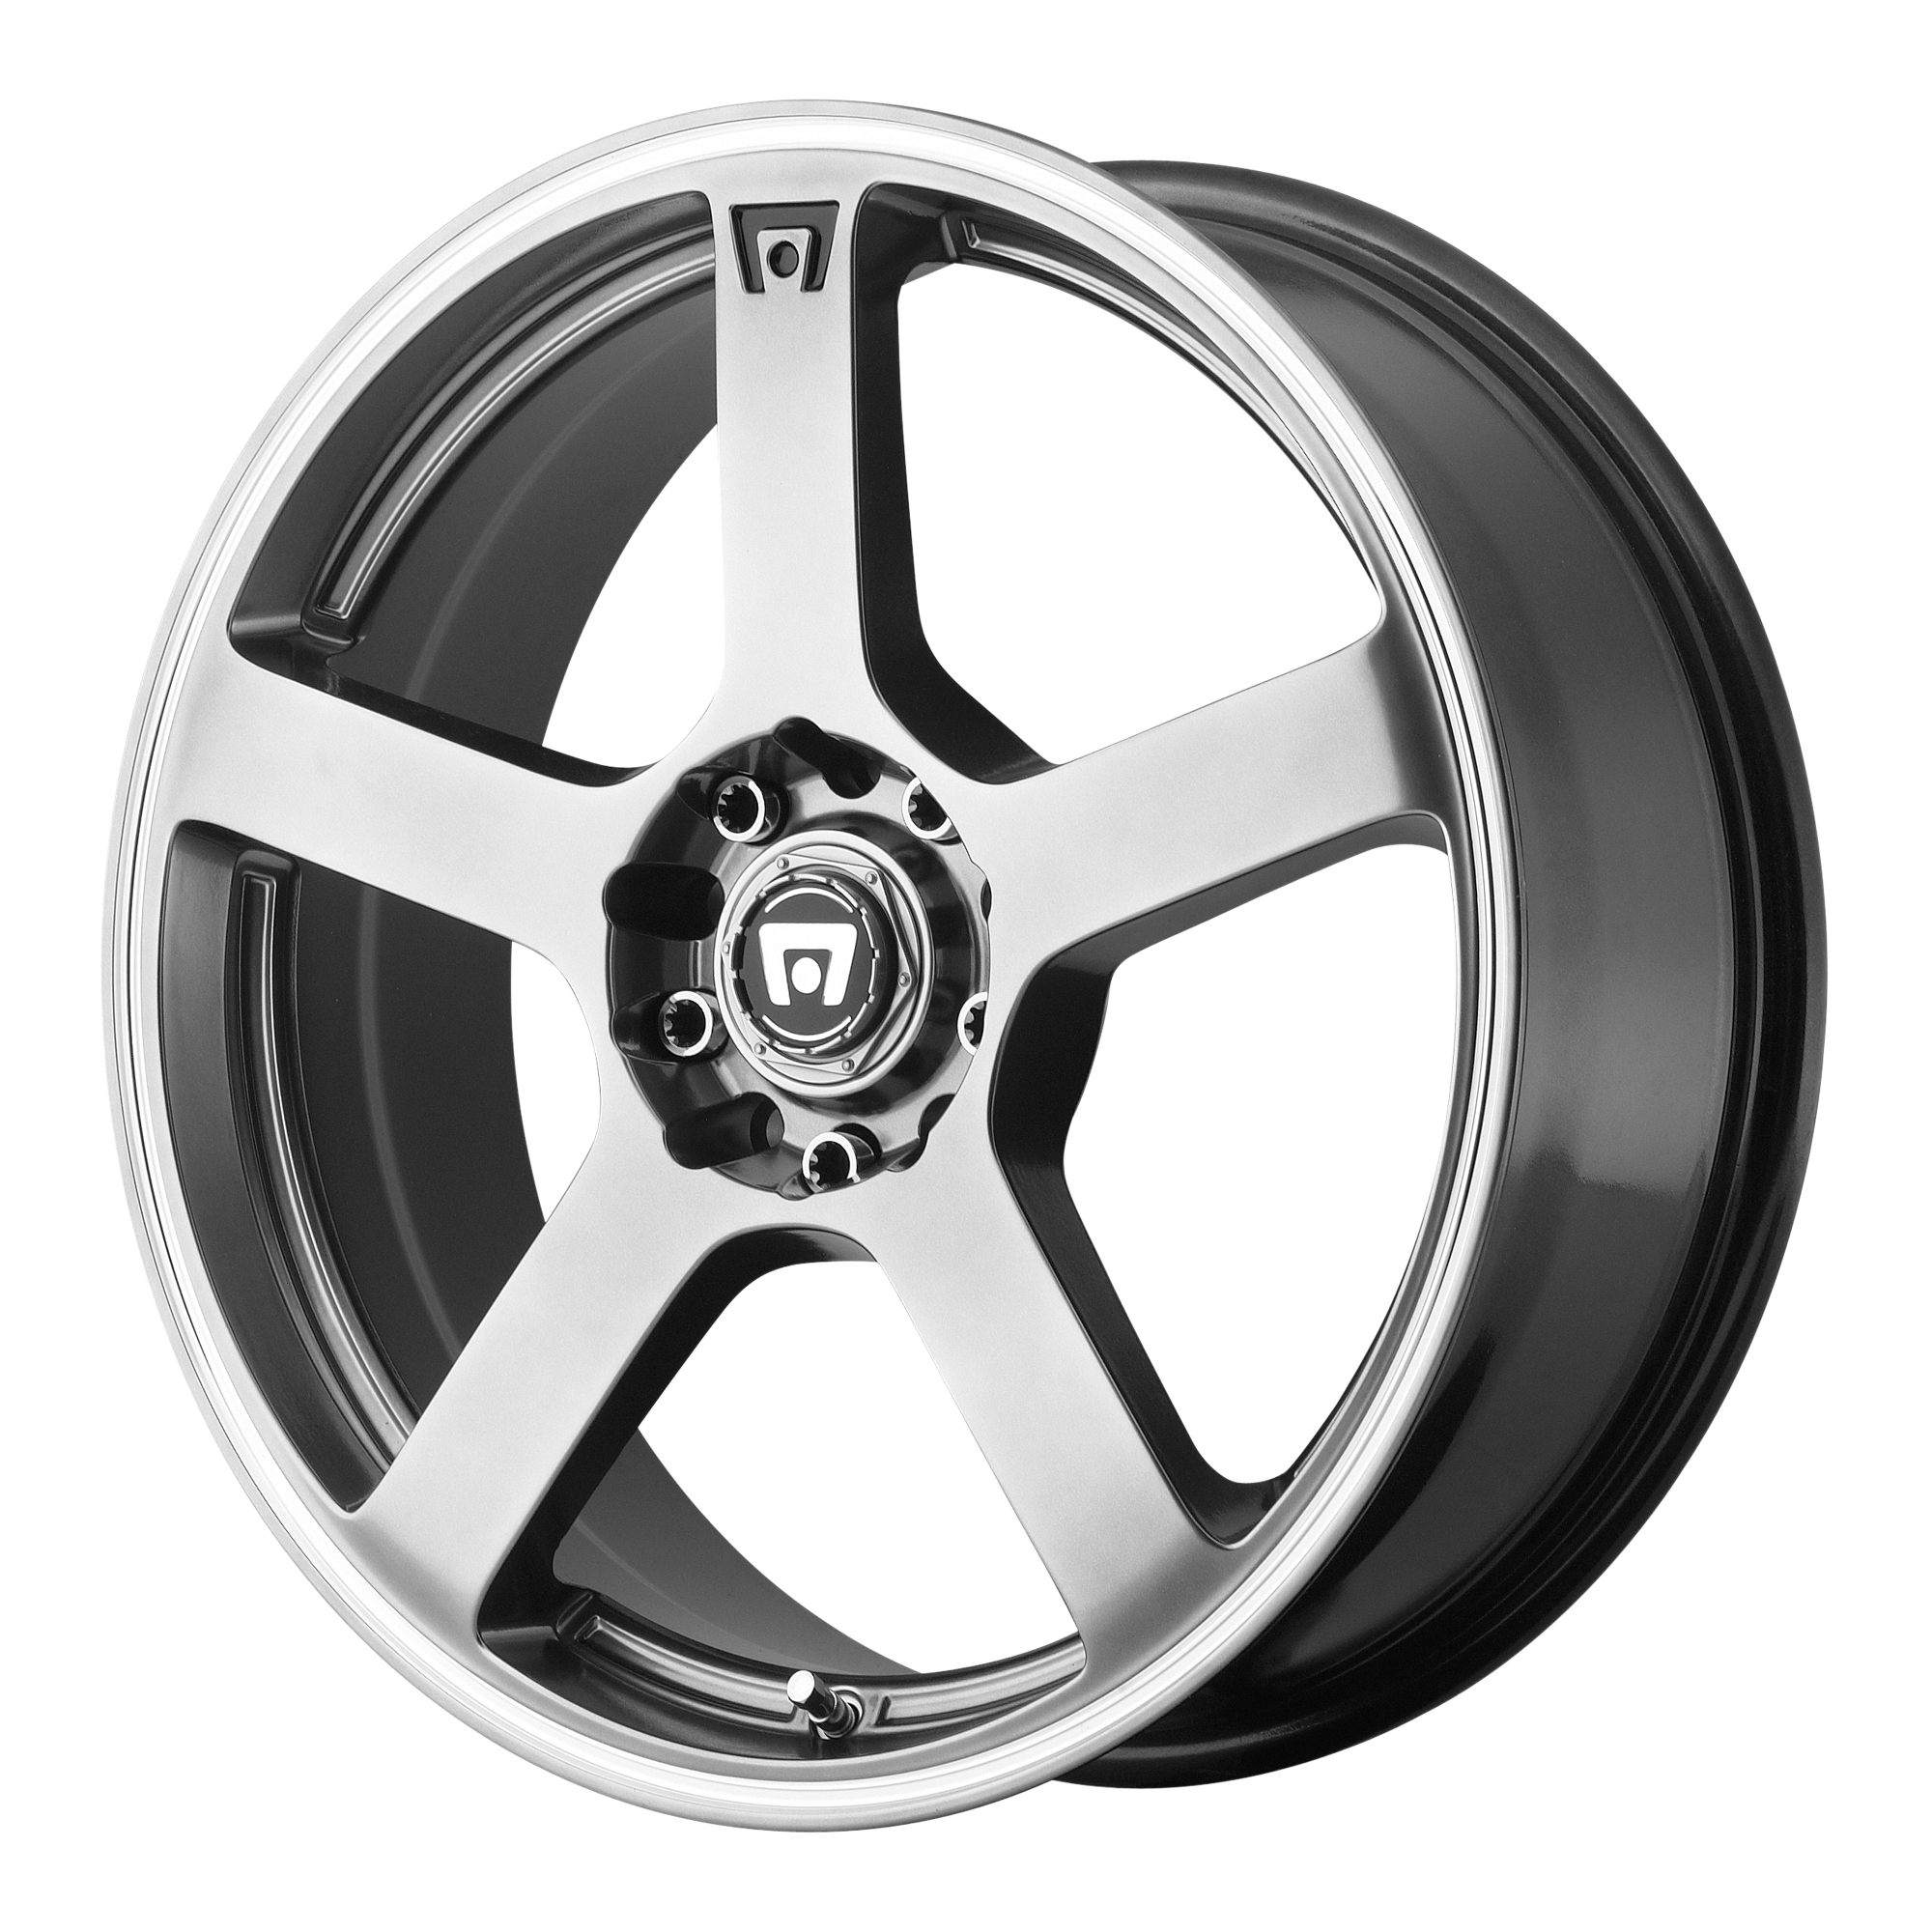 Motegi Racing Wheels MR116 Dark Silver w/ Machined Flange